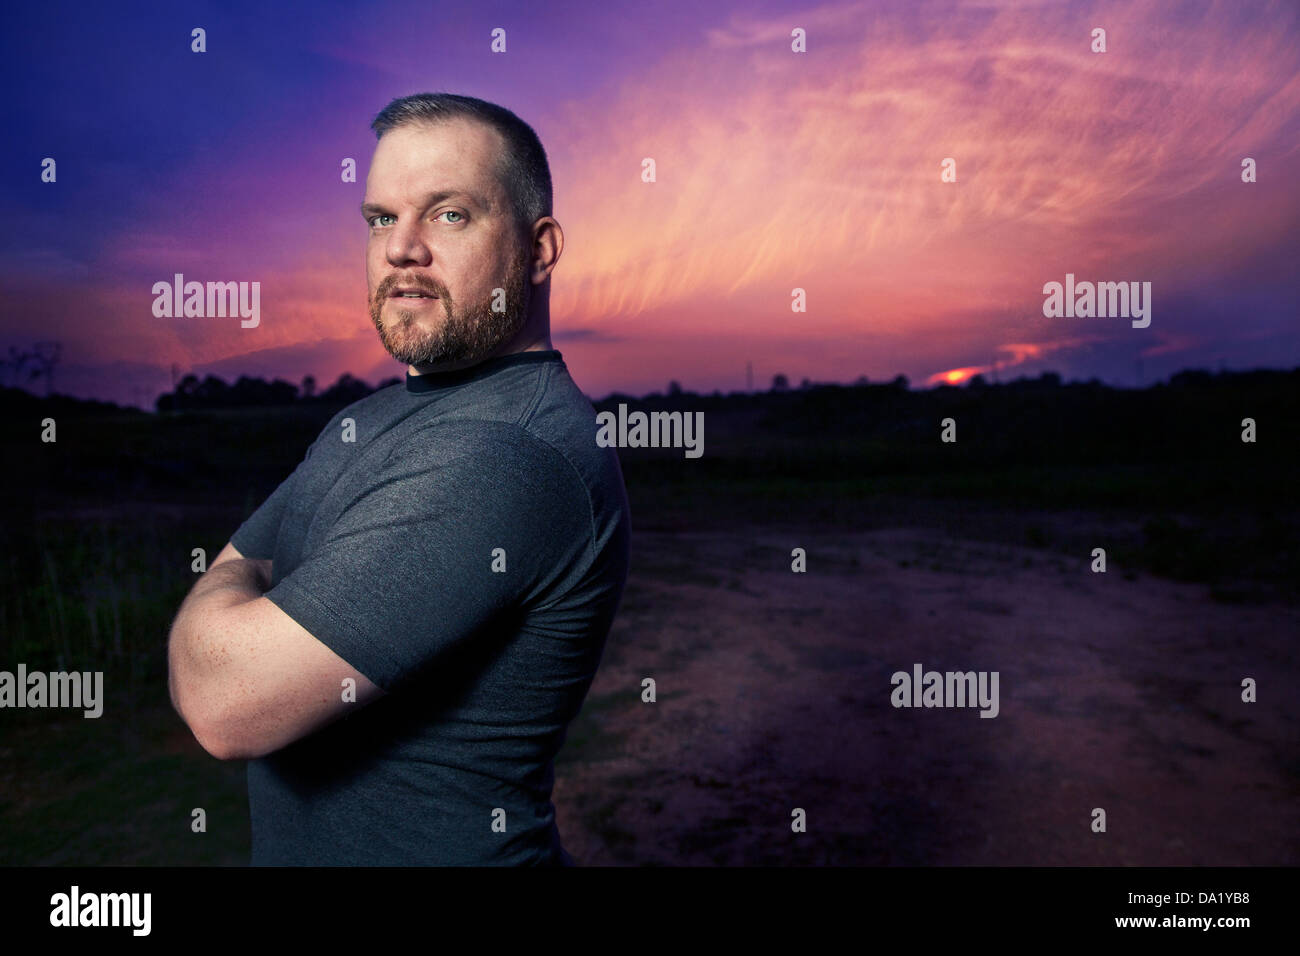 Man stands against dusk sky - Stock Image